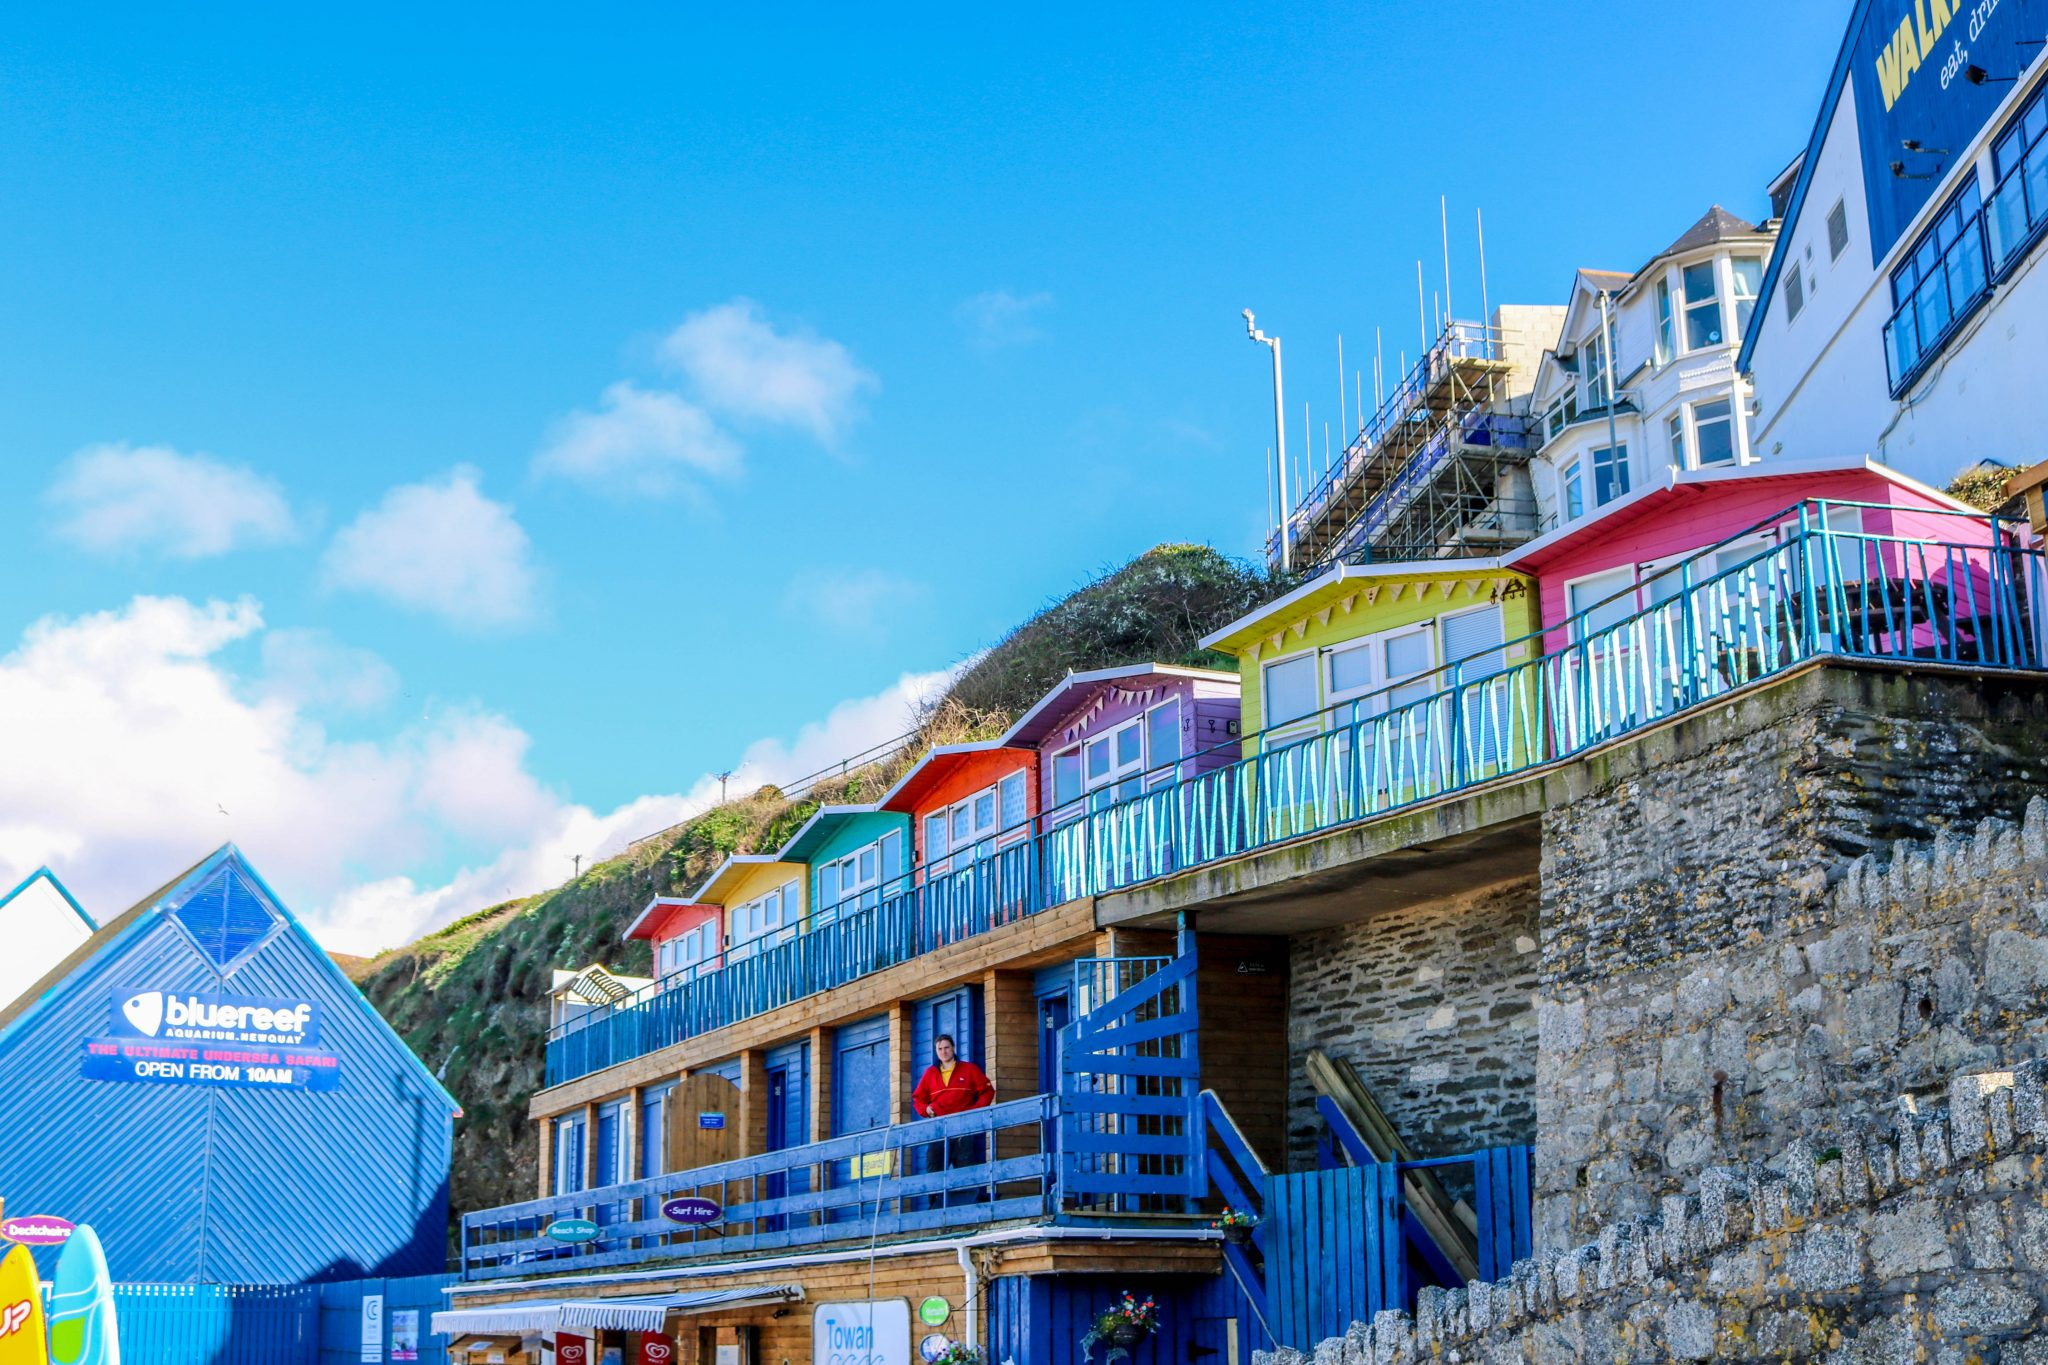 Top things to do in Newquay | Cornwall's surfing capital